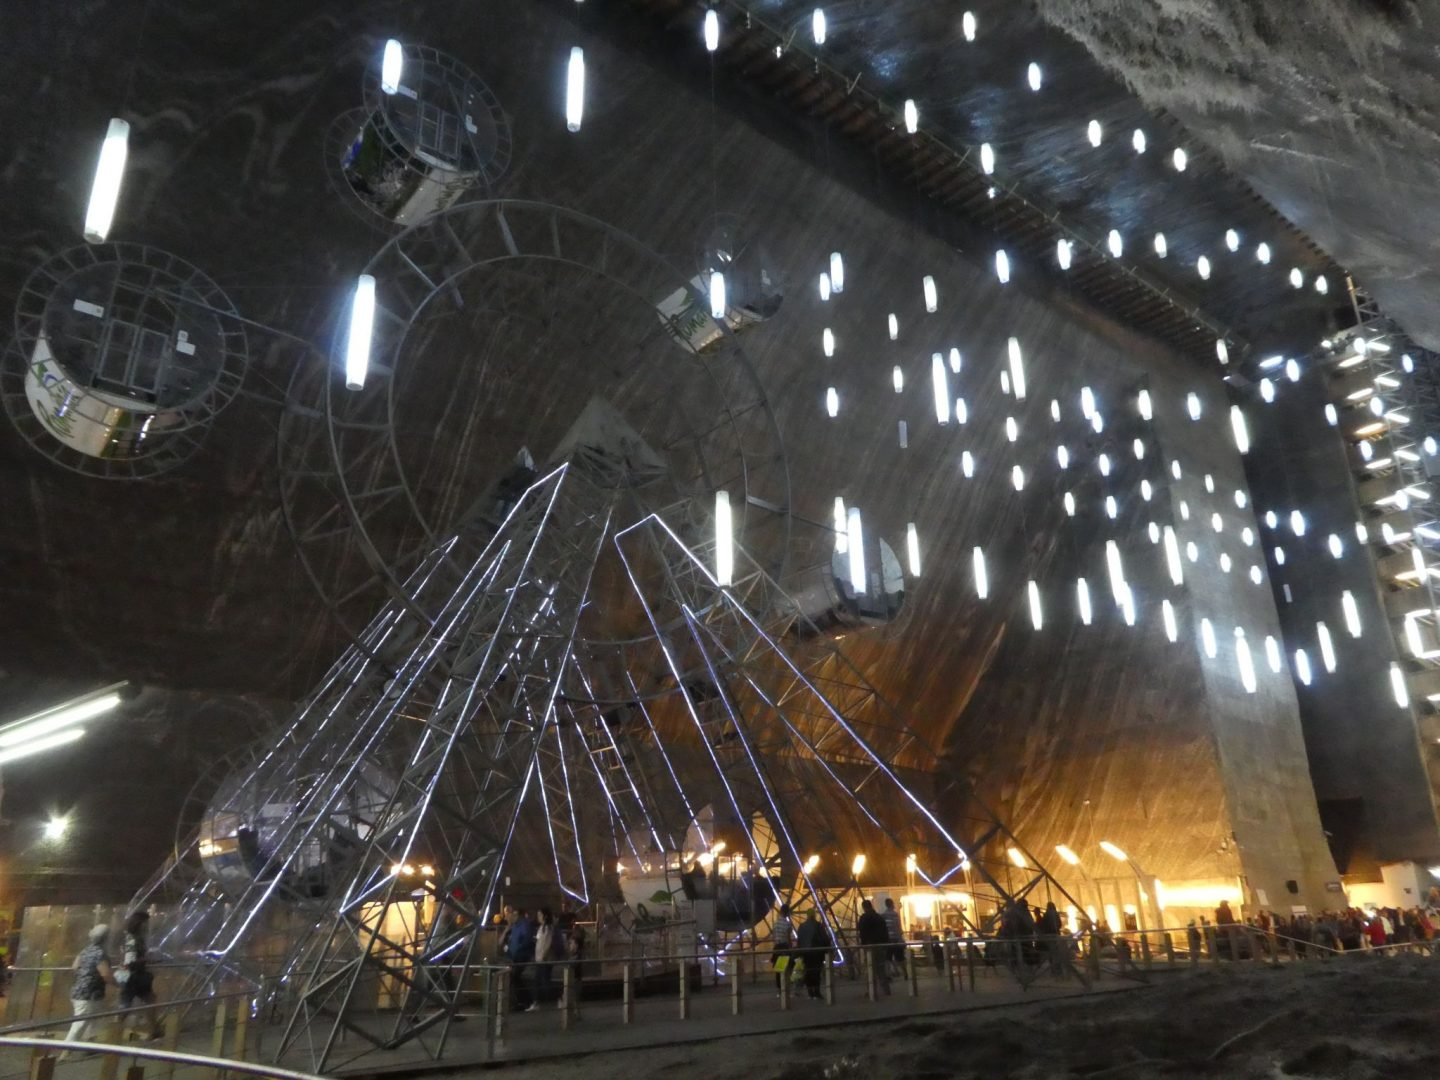 Salina Turda (20 July 2019)